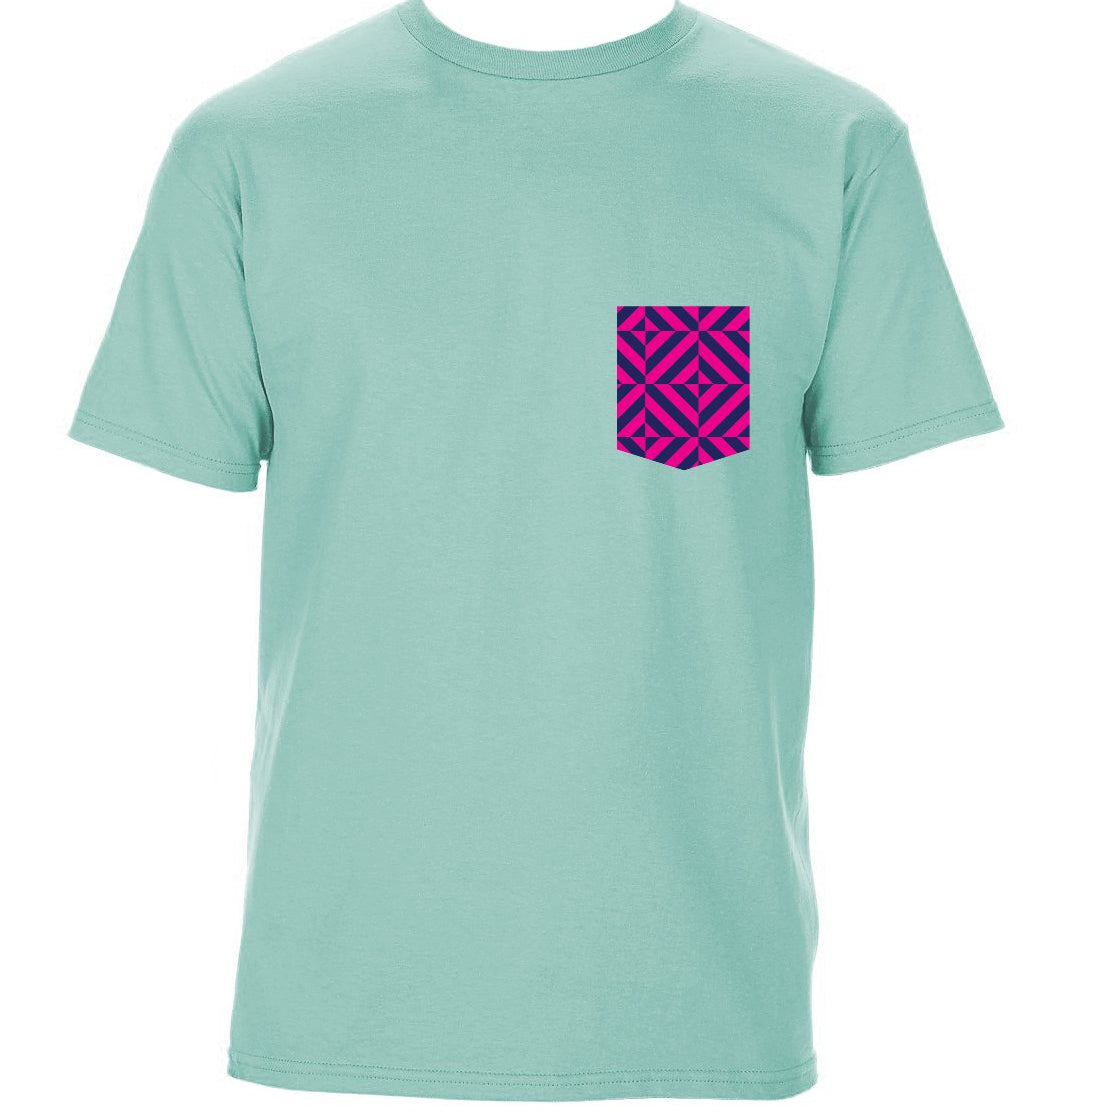 TRAV MSK LIMITED EDITION POCKET T-SHIRT (CELADON / PINK PATTERN)